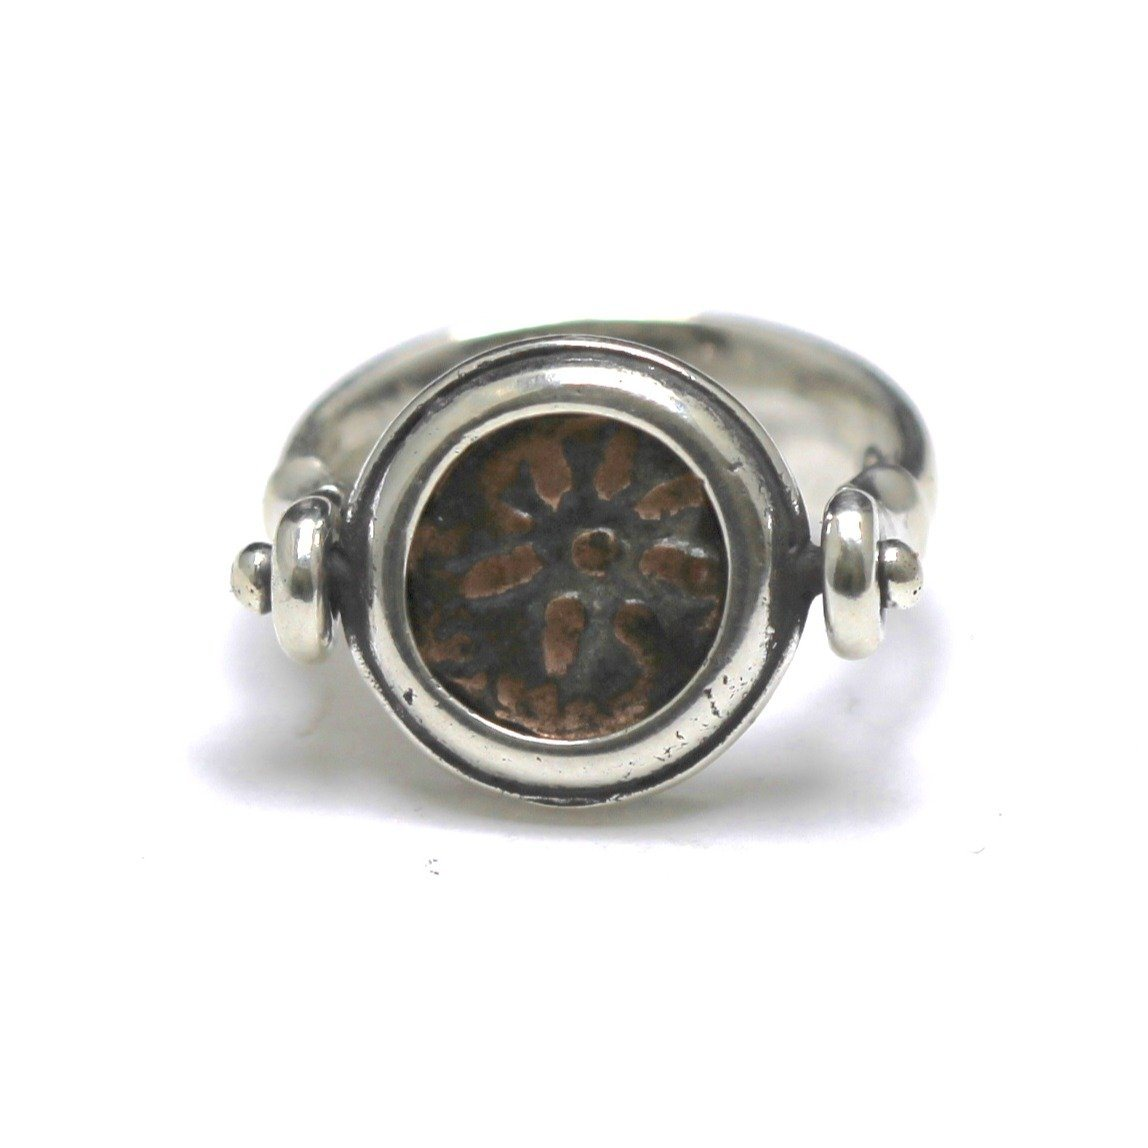 Widows Mite Flip Ring, Star Up, Sterling Silver, Genuine Ancient Coin, with Certificate  R83 - Erez Ancient Coin Jewelry